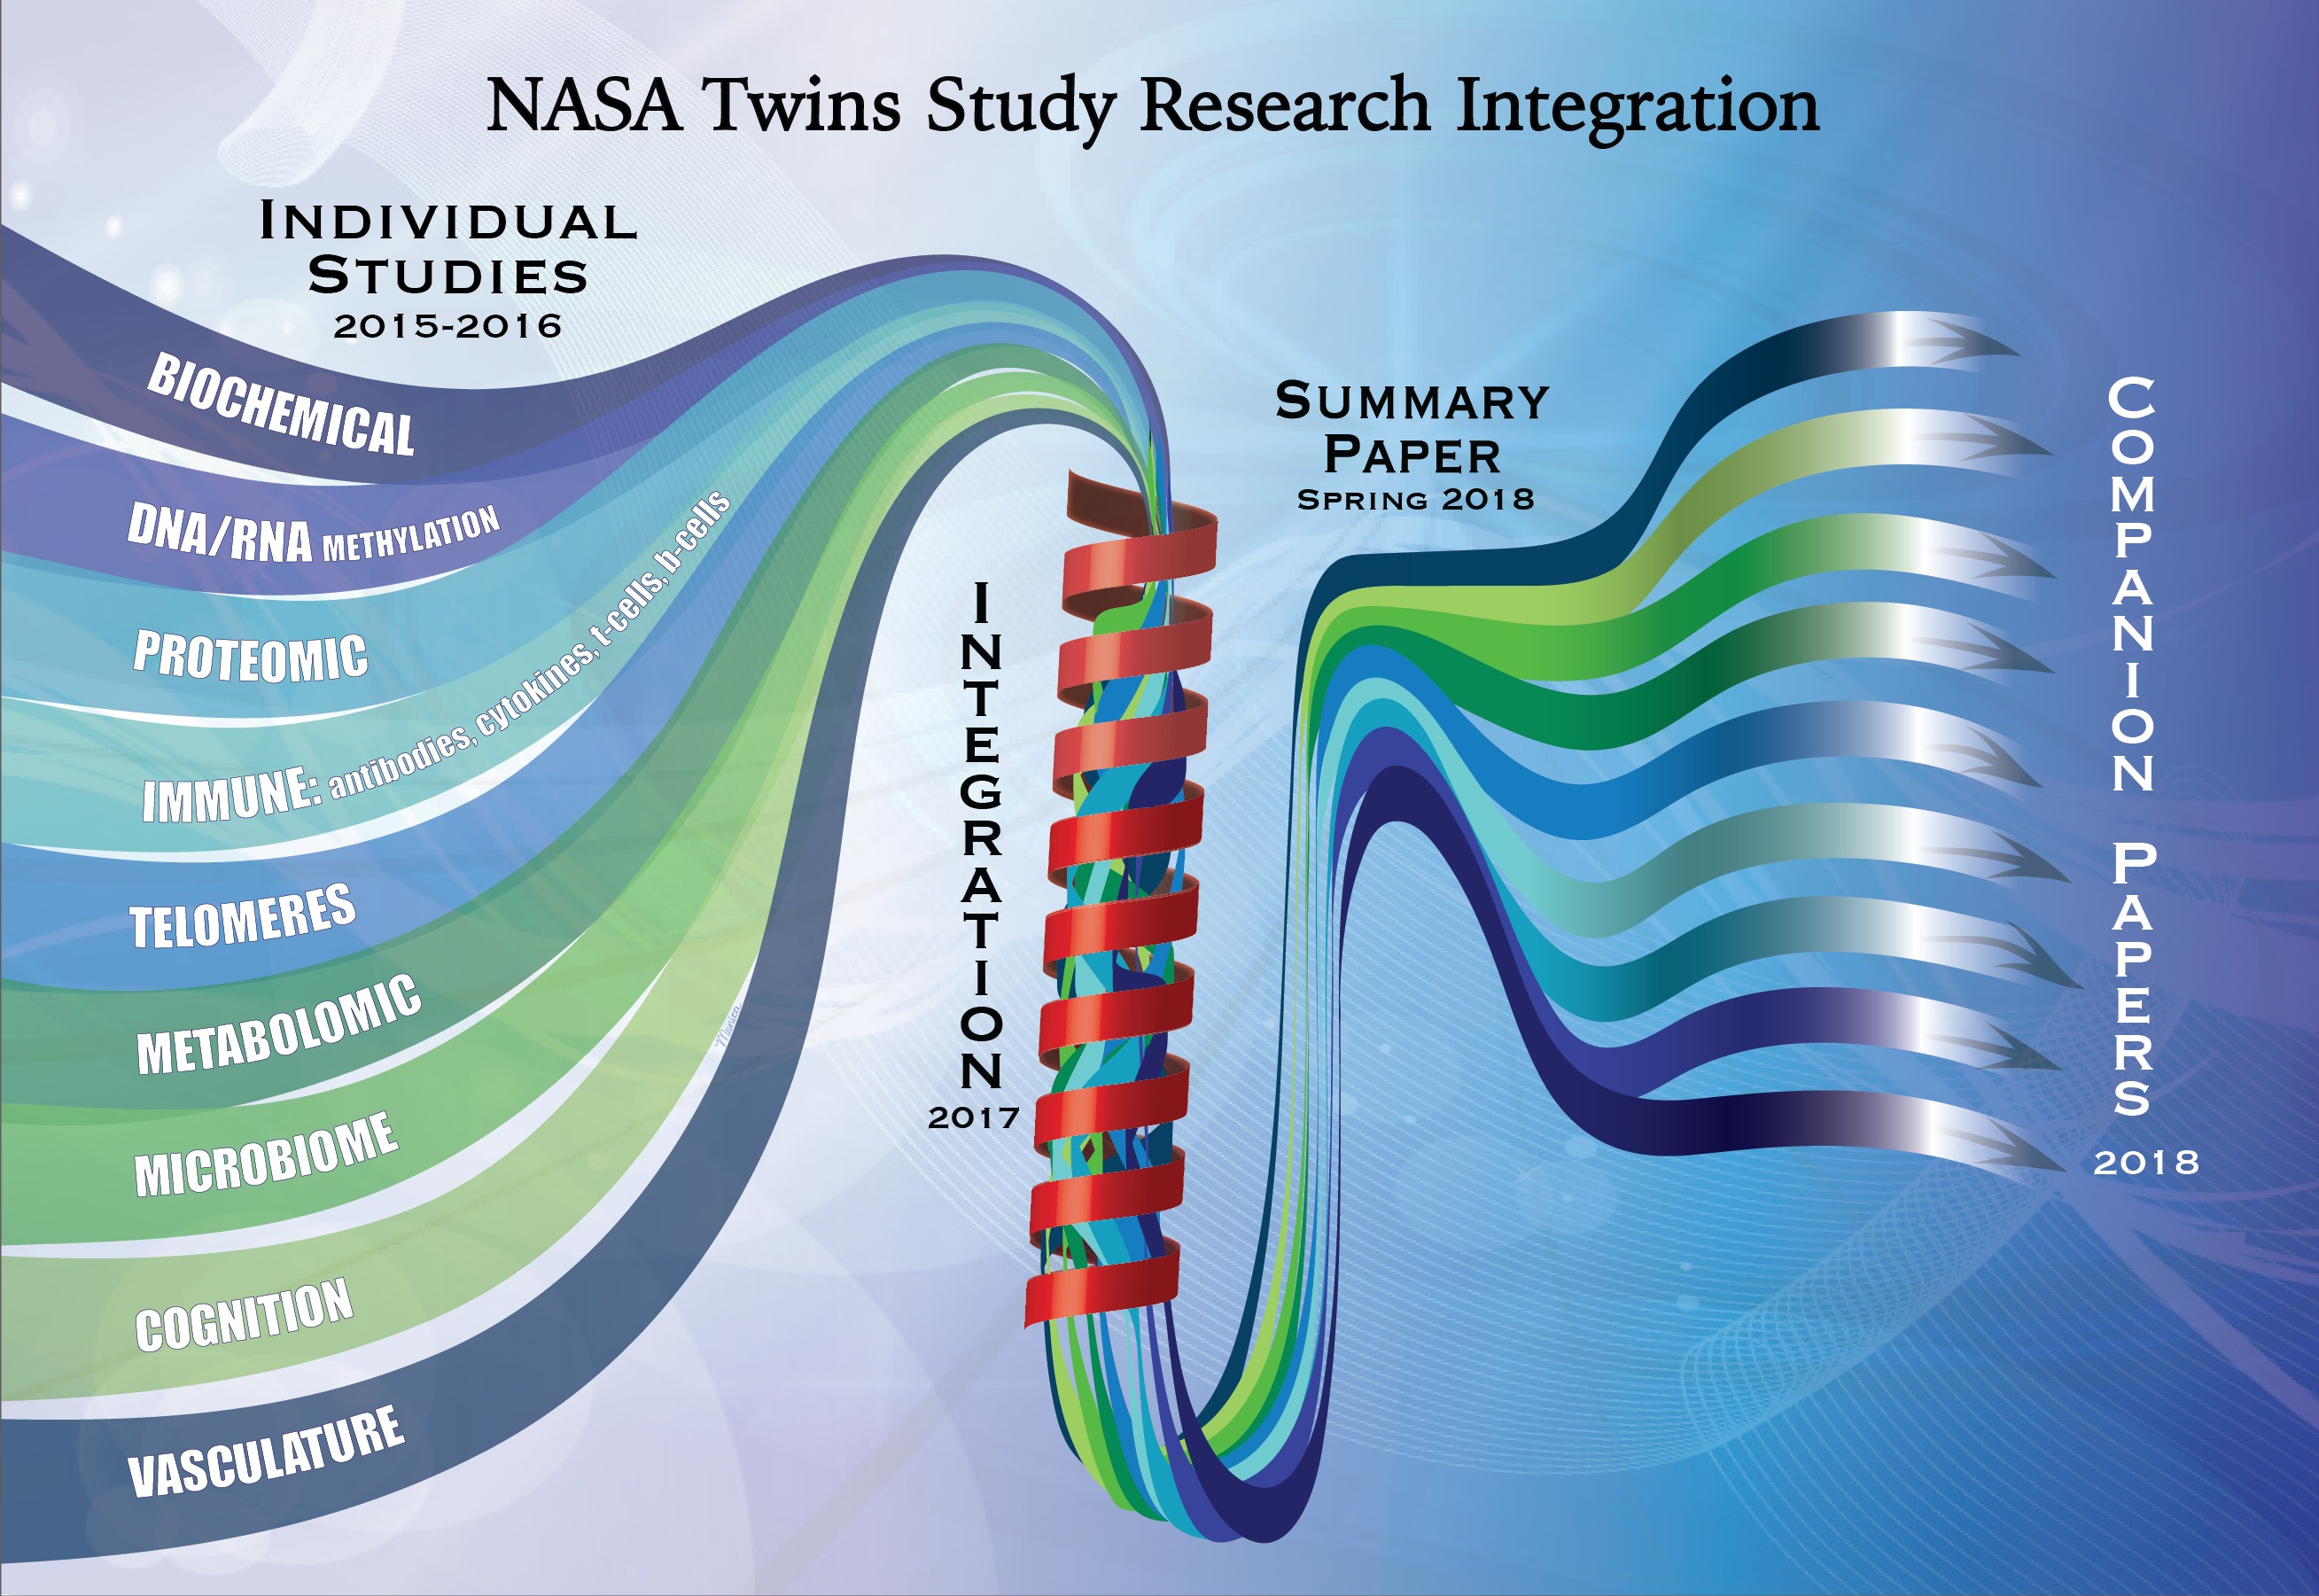 Graphic illustration of the path the individual Twins Study research